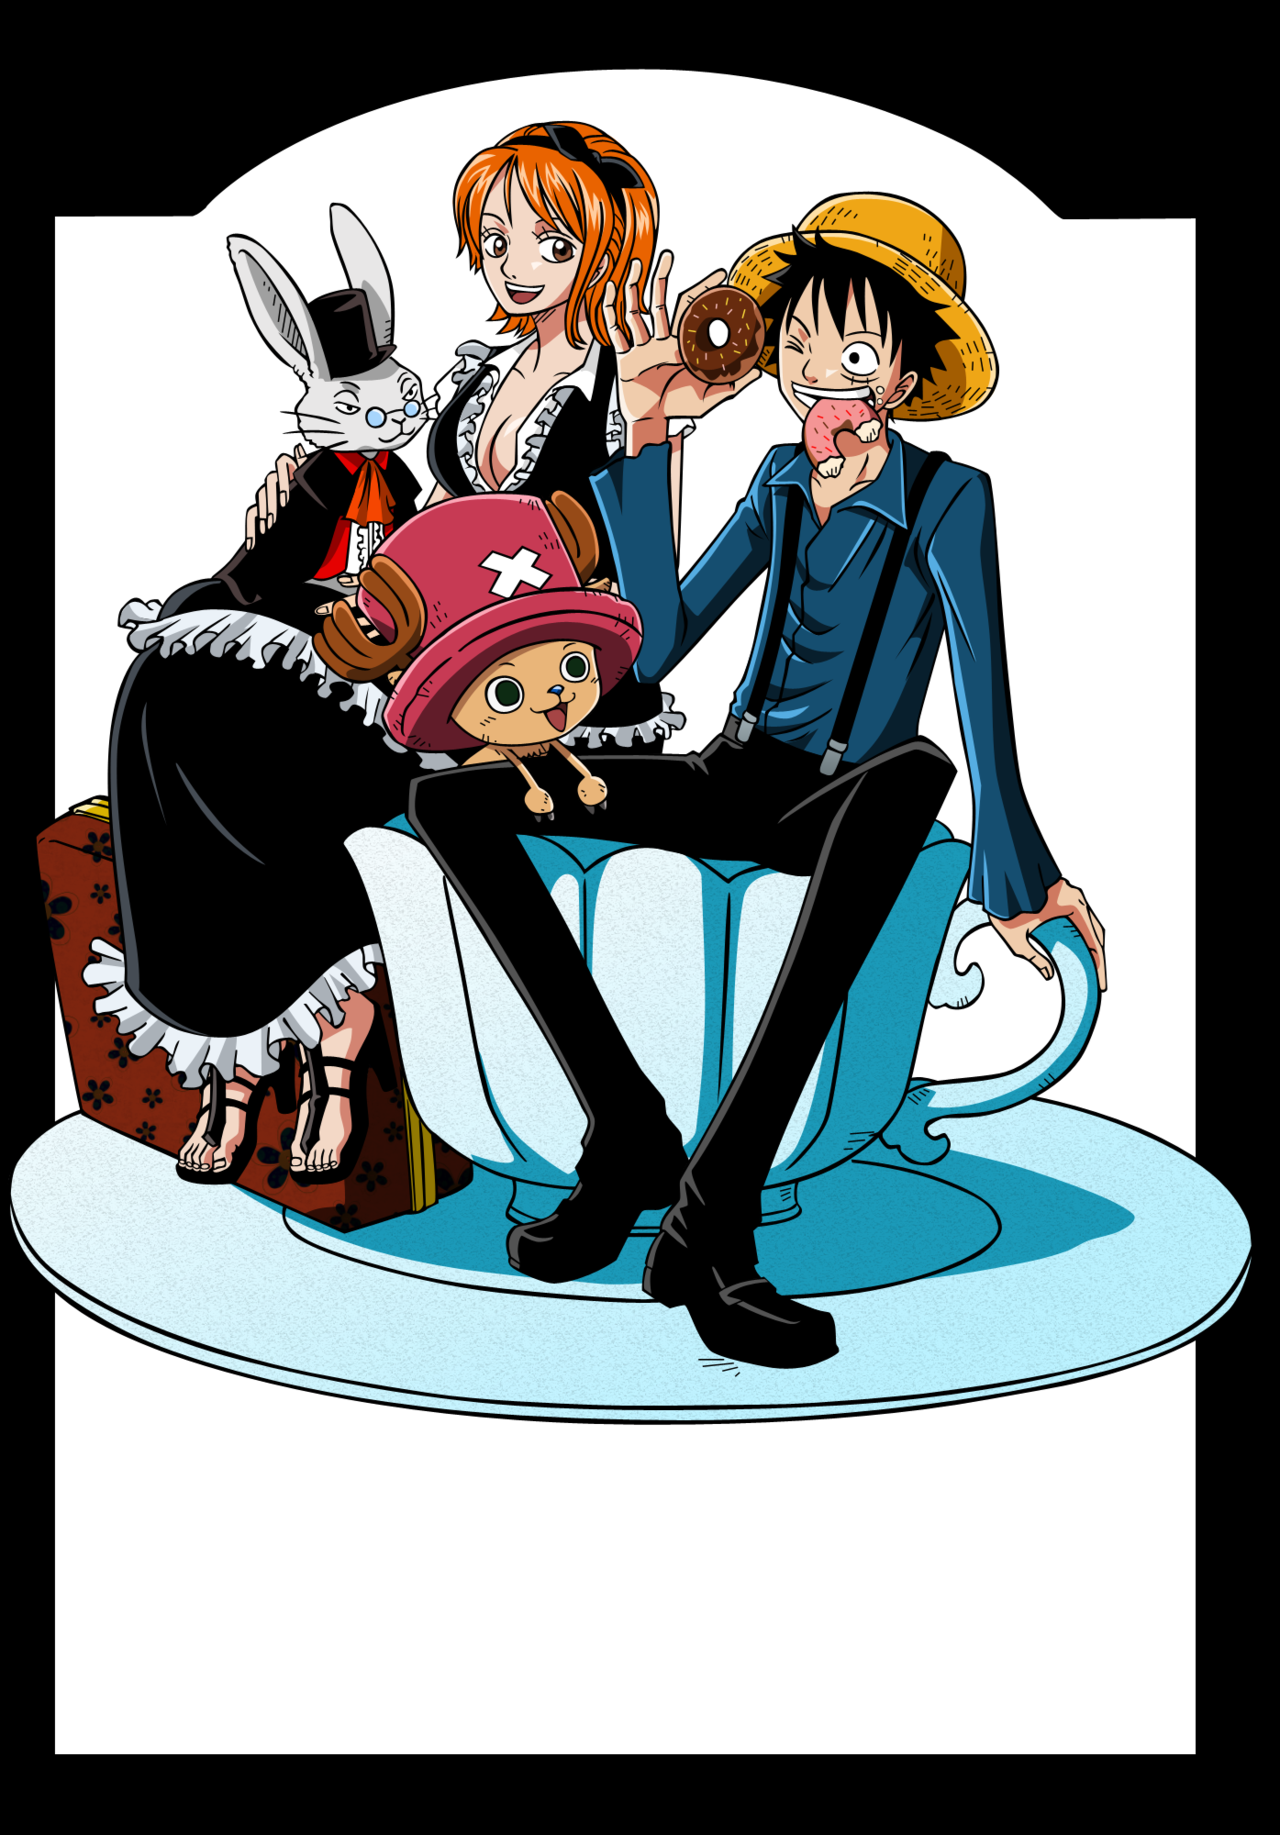 Luffy and Nami favourites by 1MangaOtaku on DeviantArt.